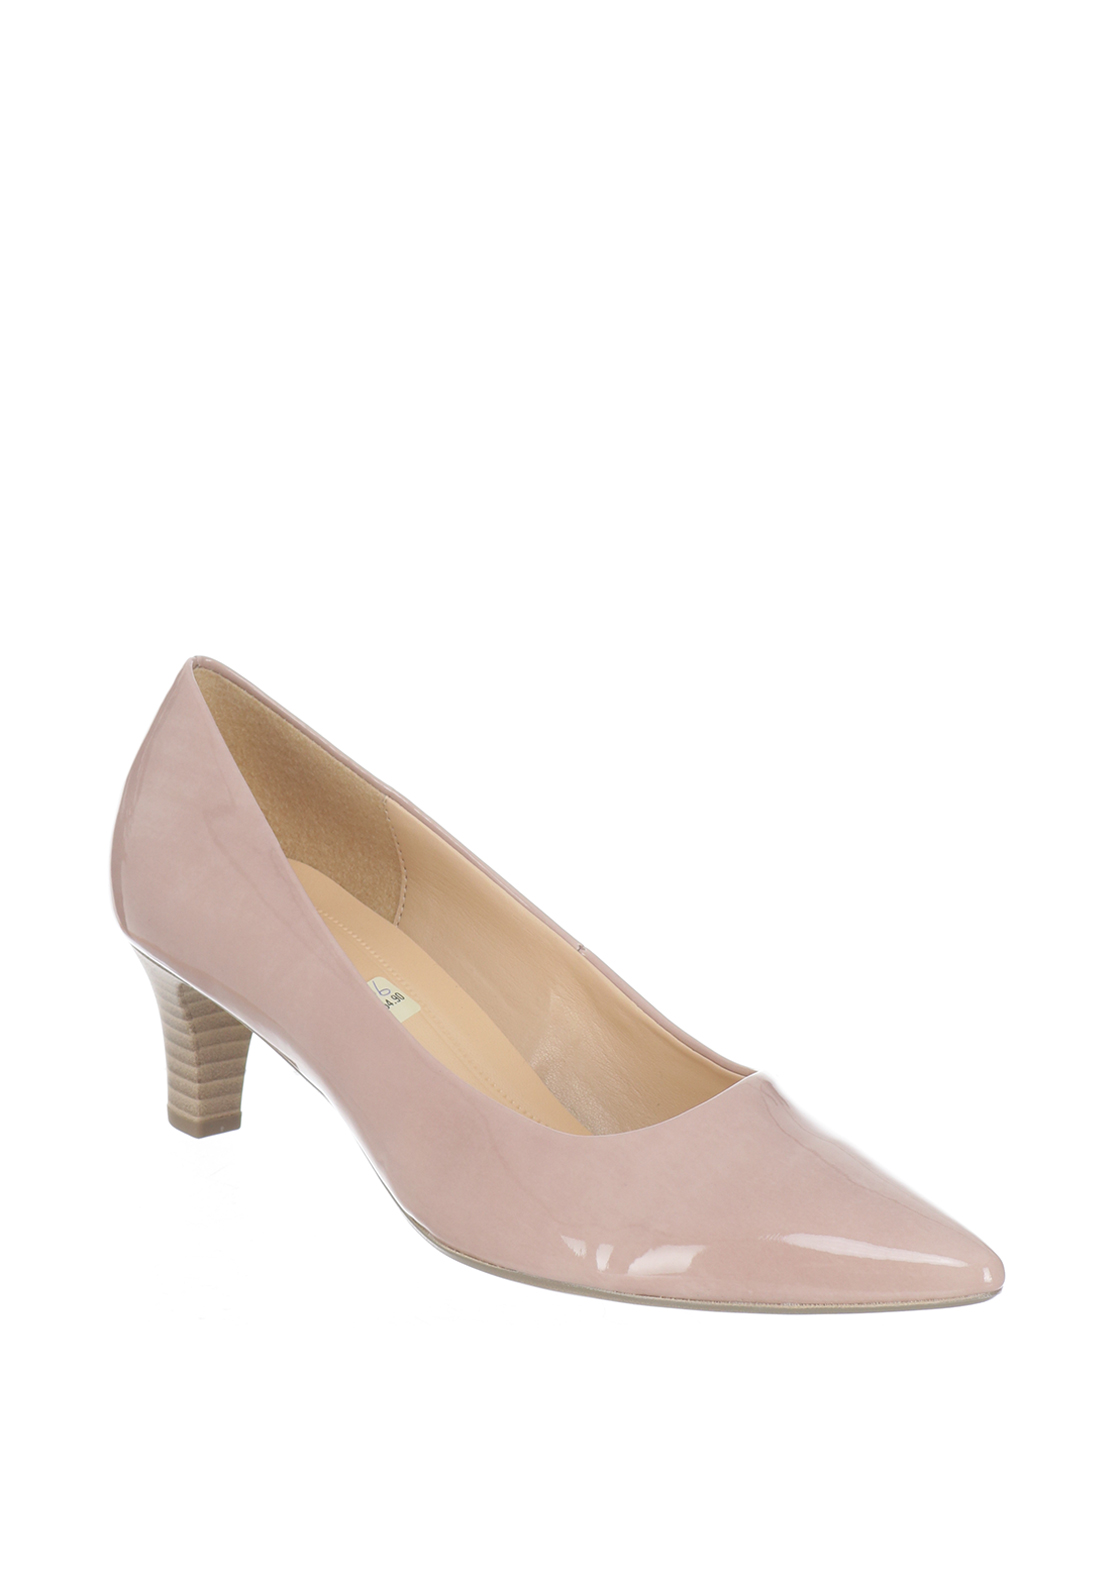 Gabor Patent Pointed Toe Heeled Court Shoes, Nude